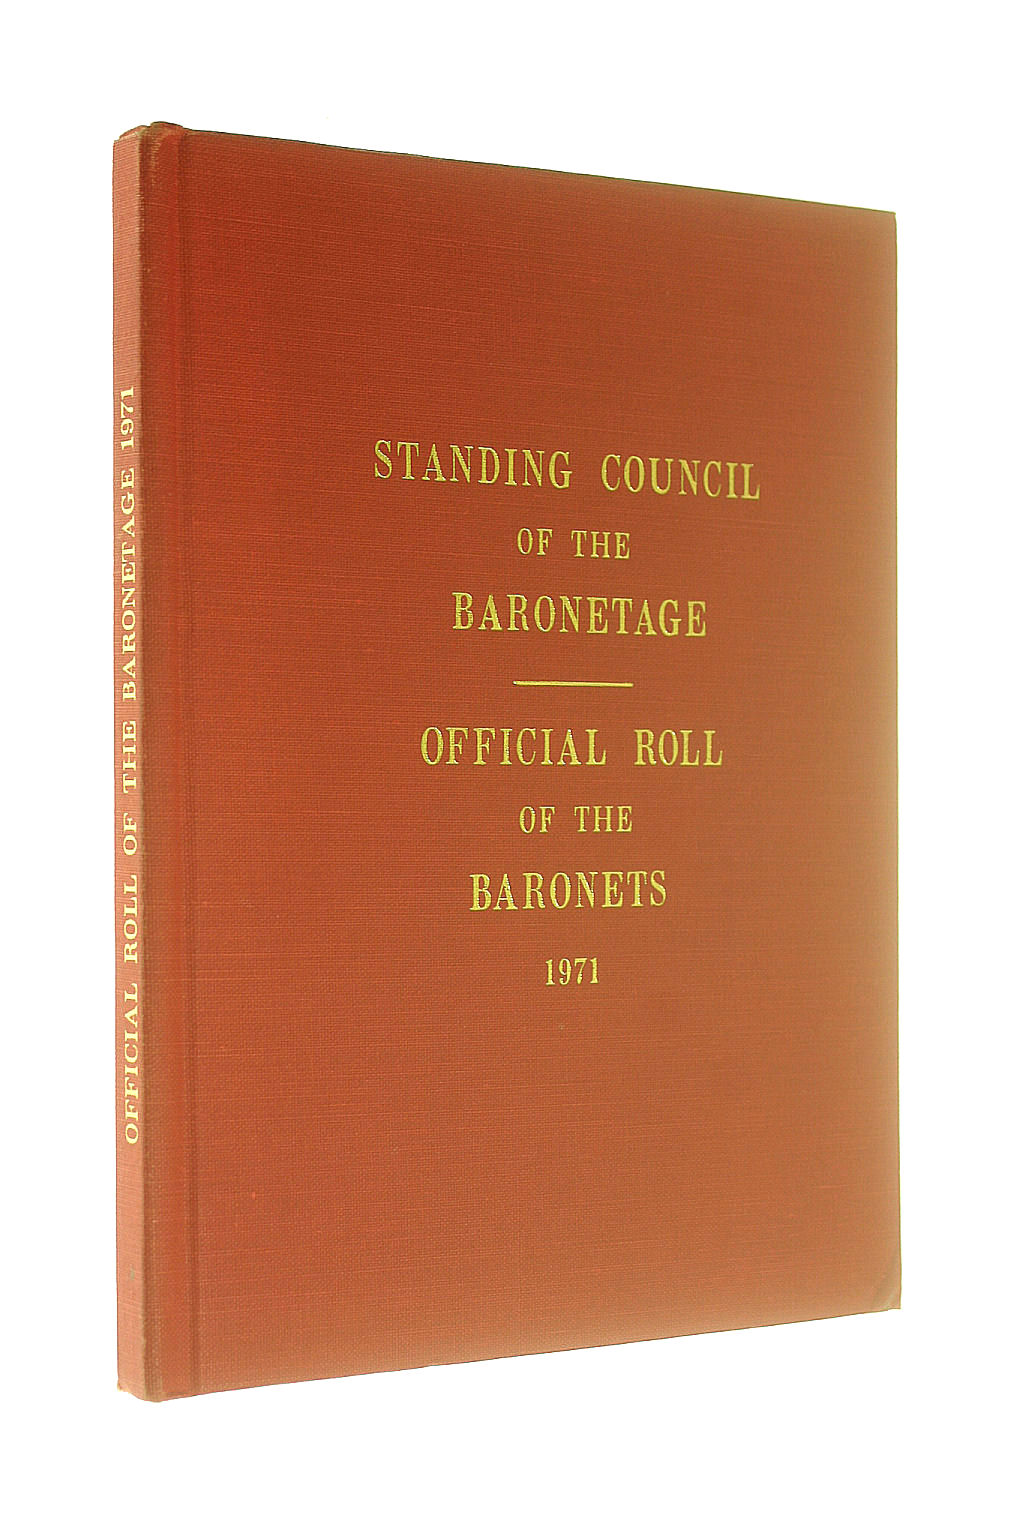 Image for Roll of the Baronets As Authorized by Royal Warrant. Issued with Royal Sanction by The Standing Council of the Baronetage. (Millenium Edition 2000).